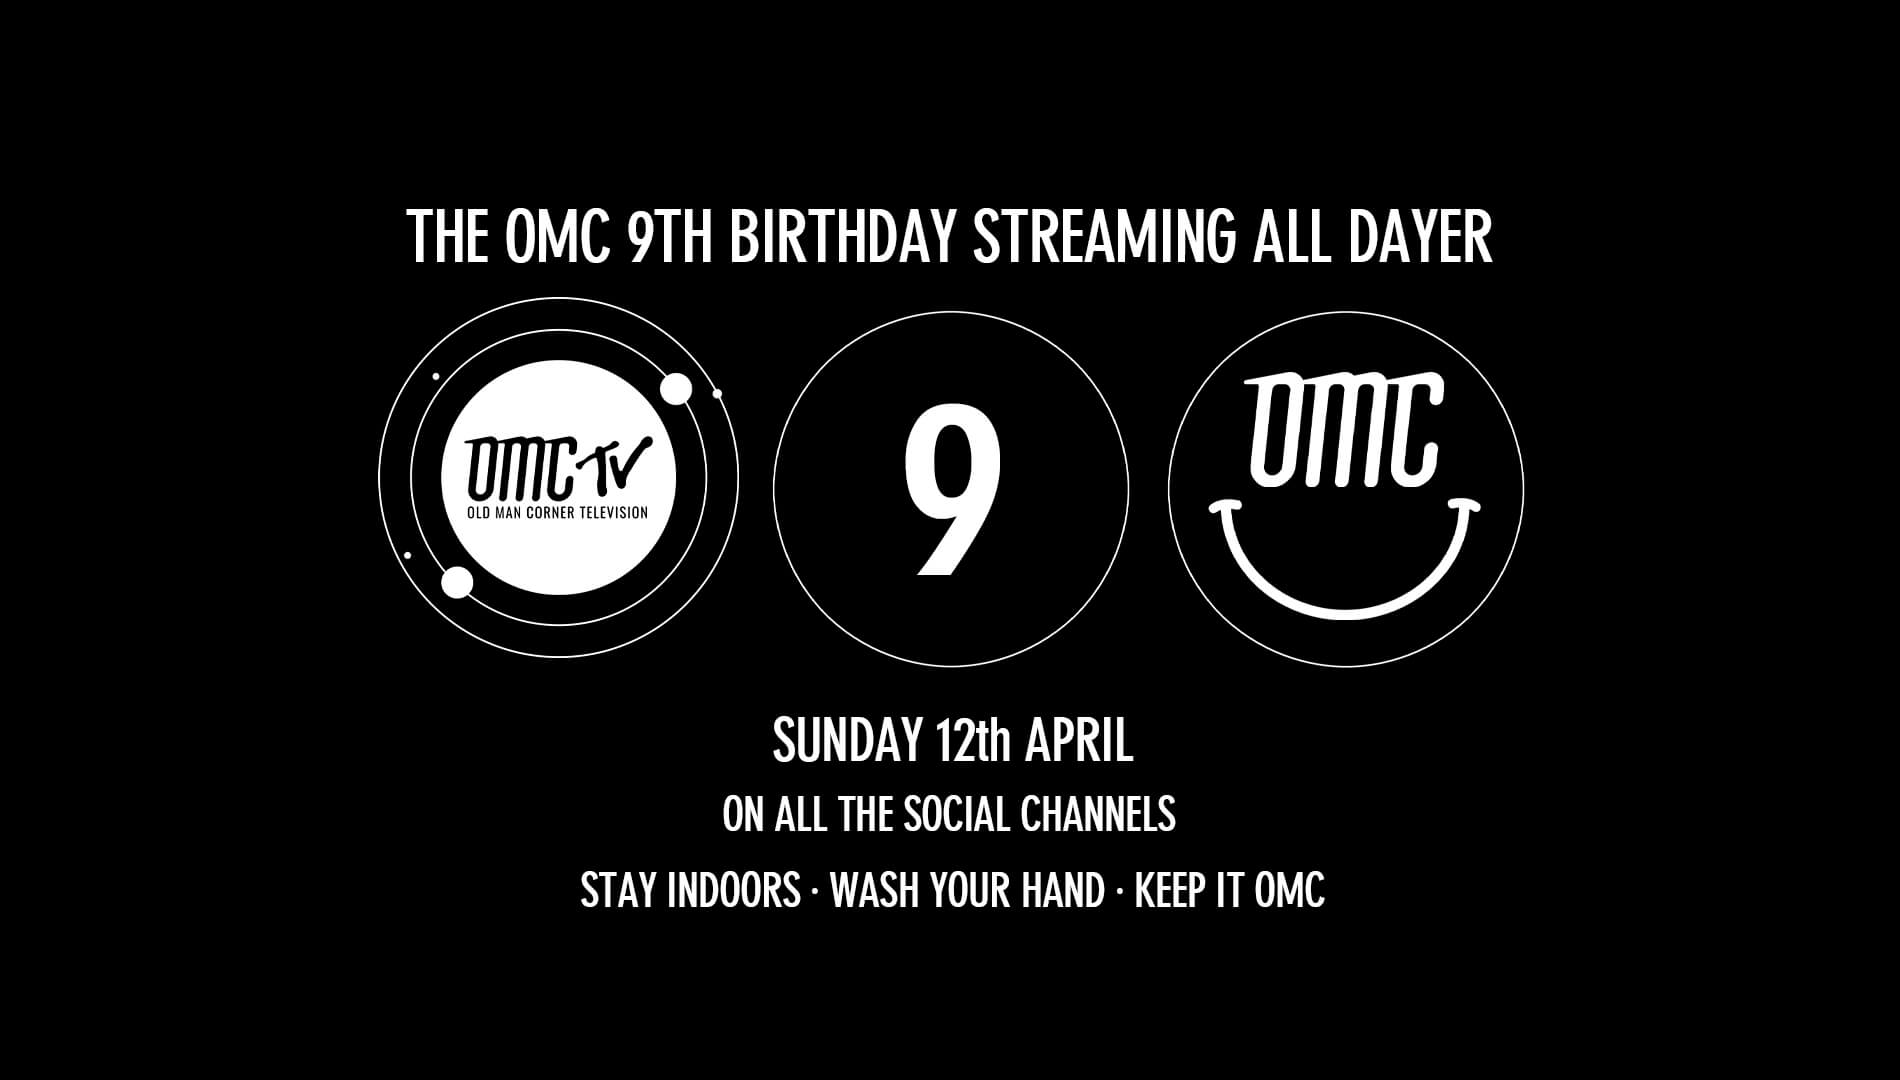 It's the OMC 9th Birthday Streaming All Dayer